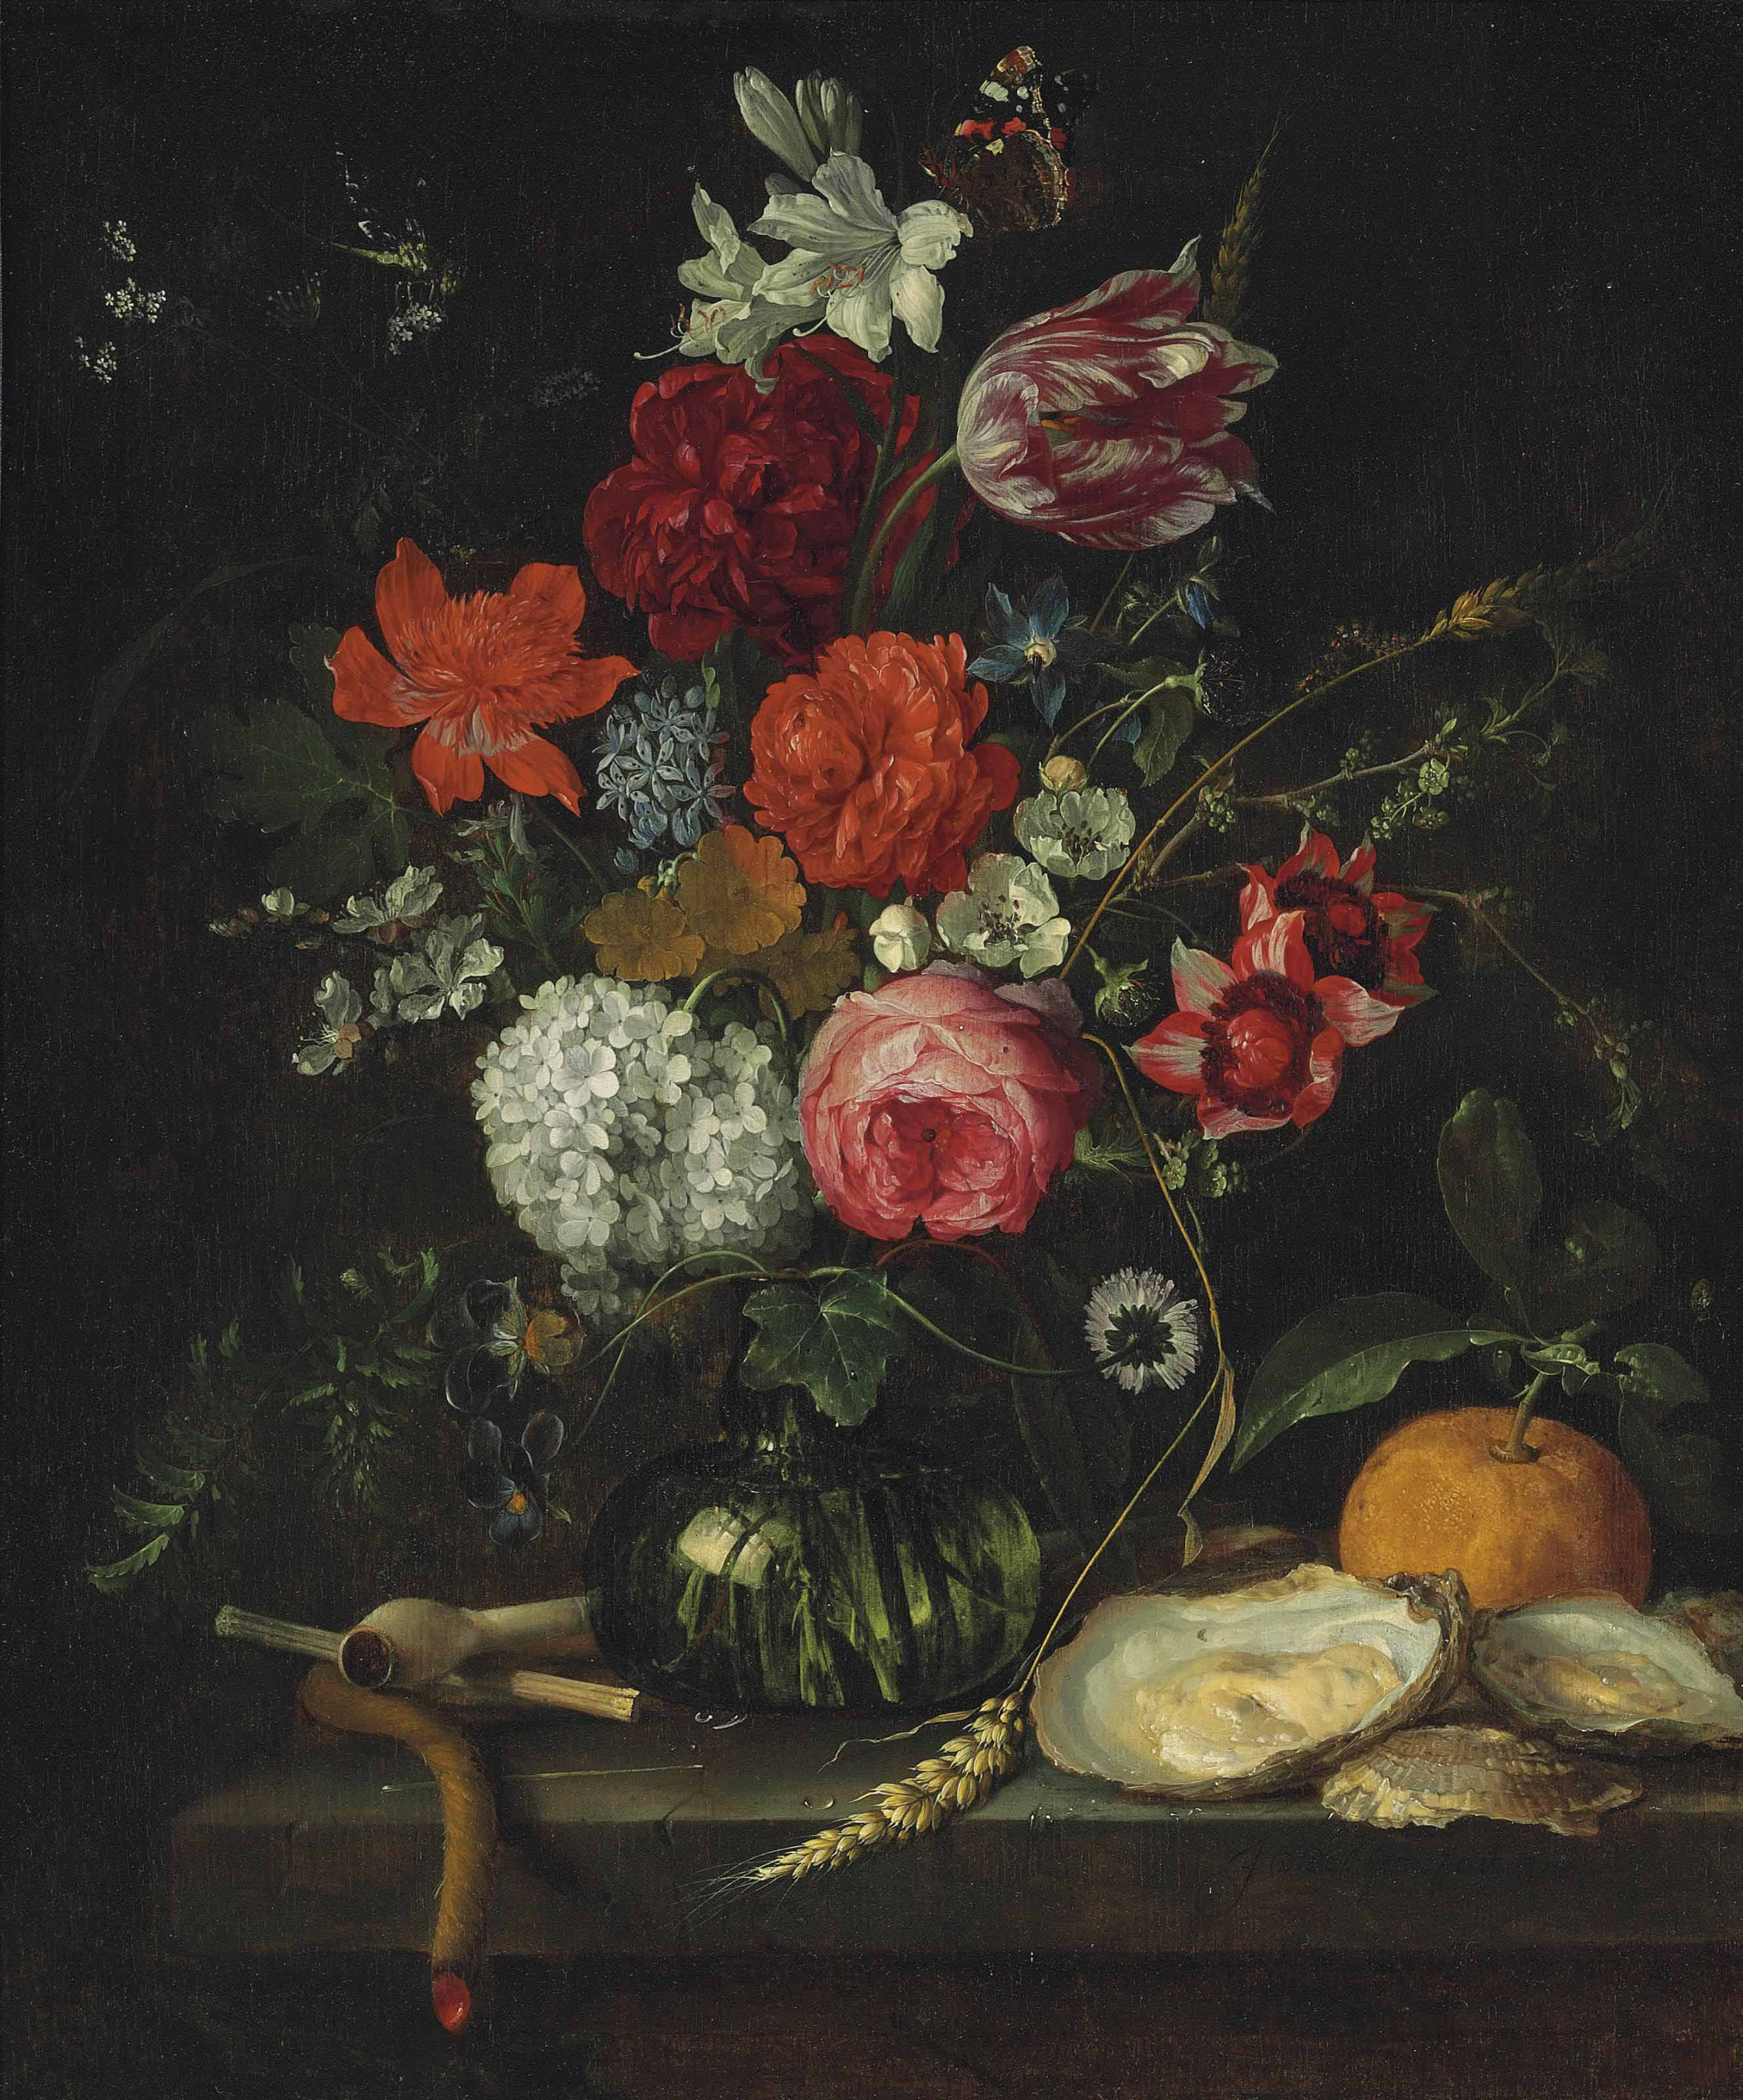 A tulip, roses, apple blossoms, cornflowers and other flowers in a glass vase on a stone ledge, with a pipe, taper, oysters and an orange, with a butterfly